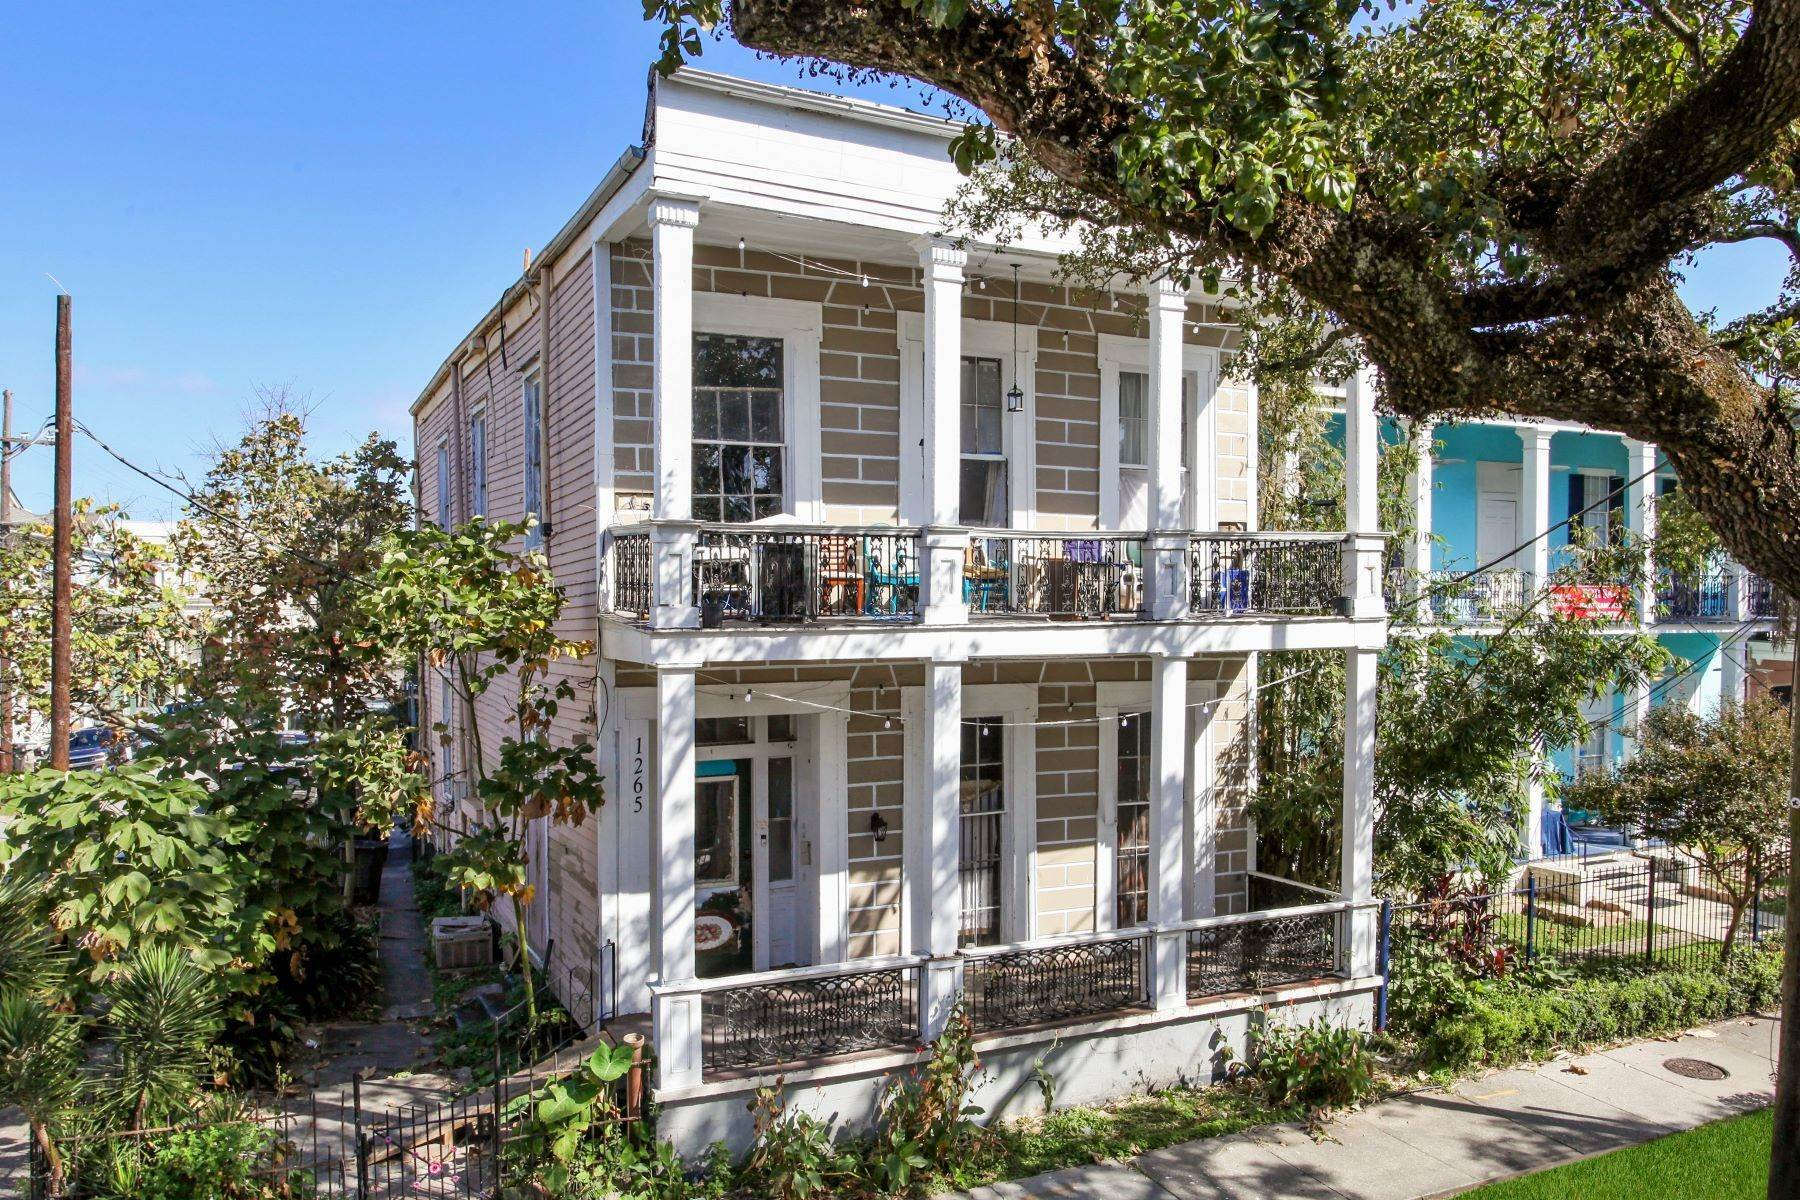 Multi-Family Homes for Sale at 1265 ESPLANADE AVE New Orleans, Louisiana 70116 United States